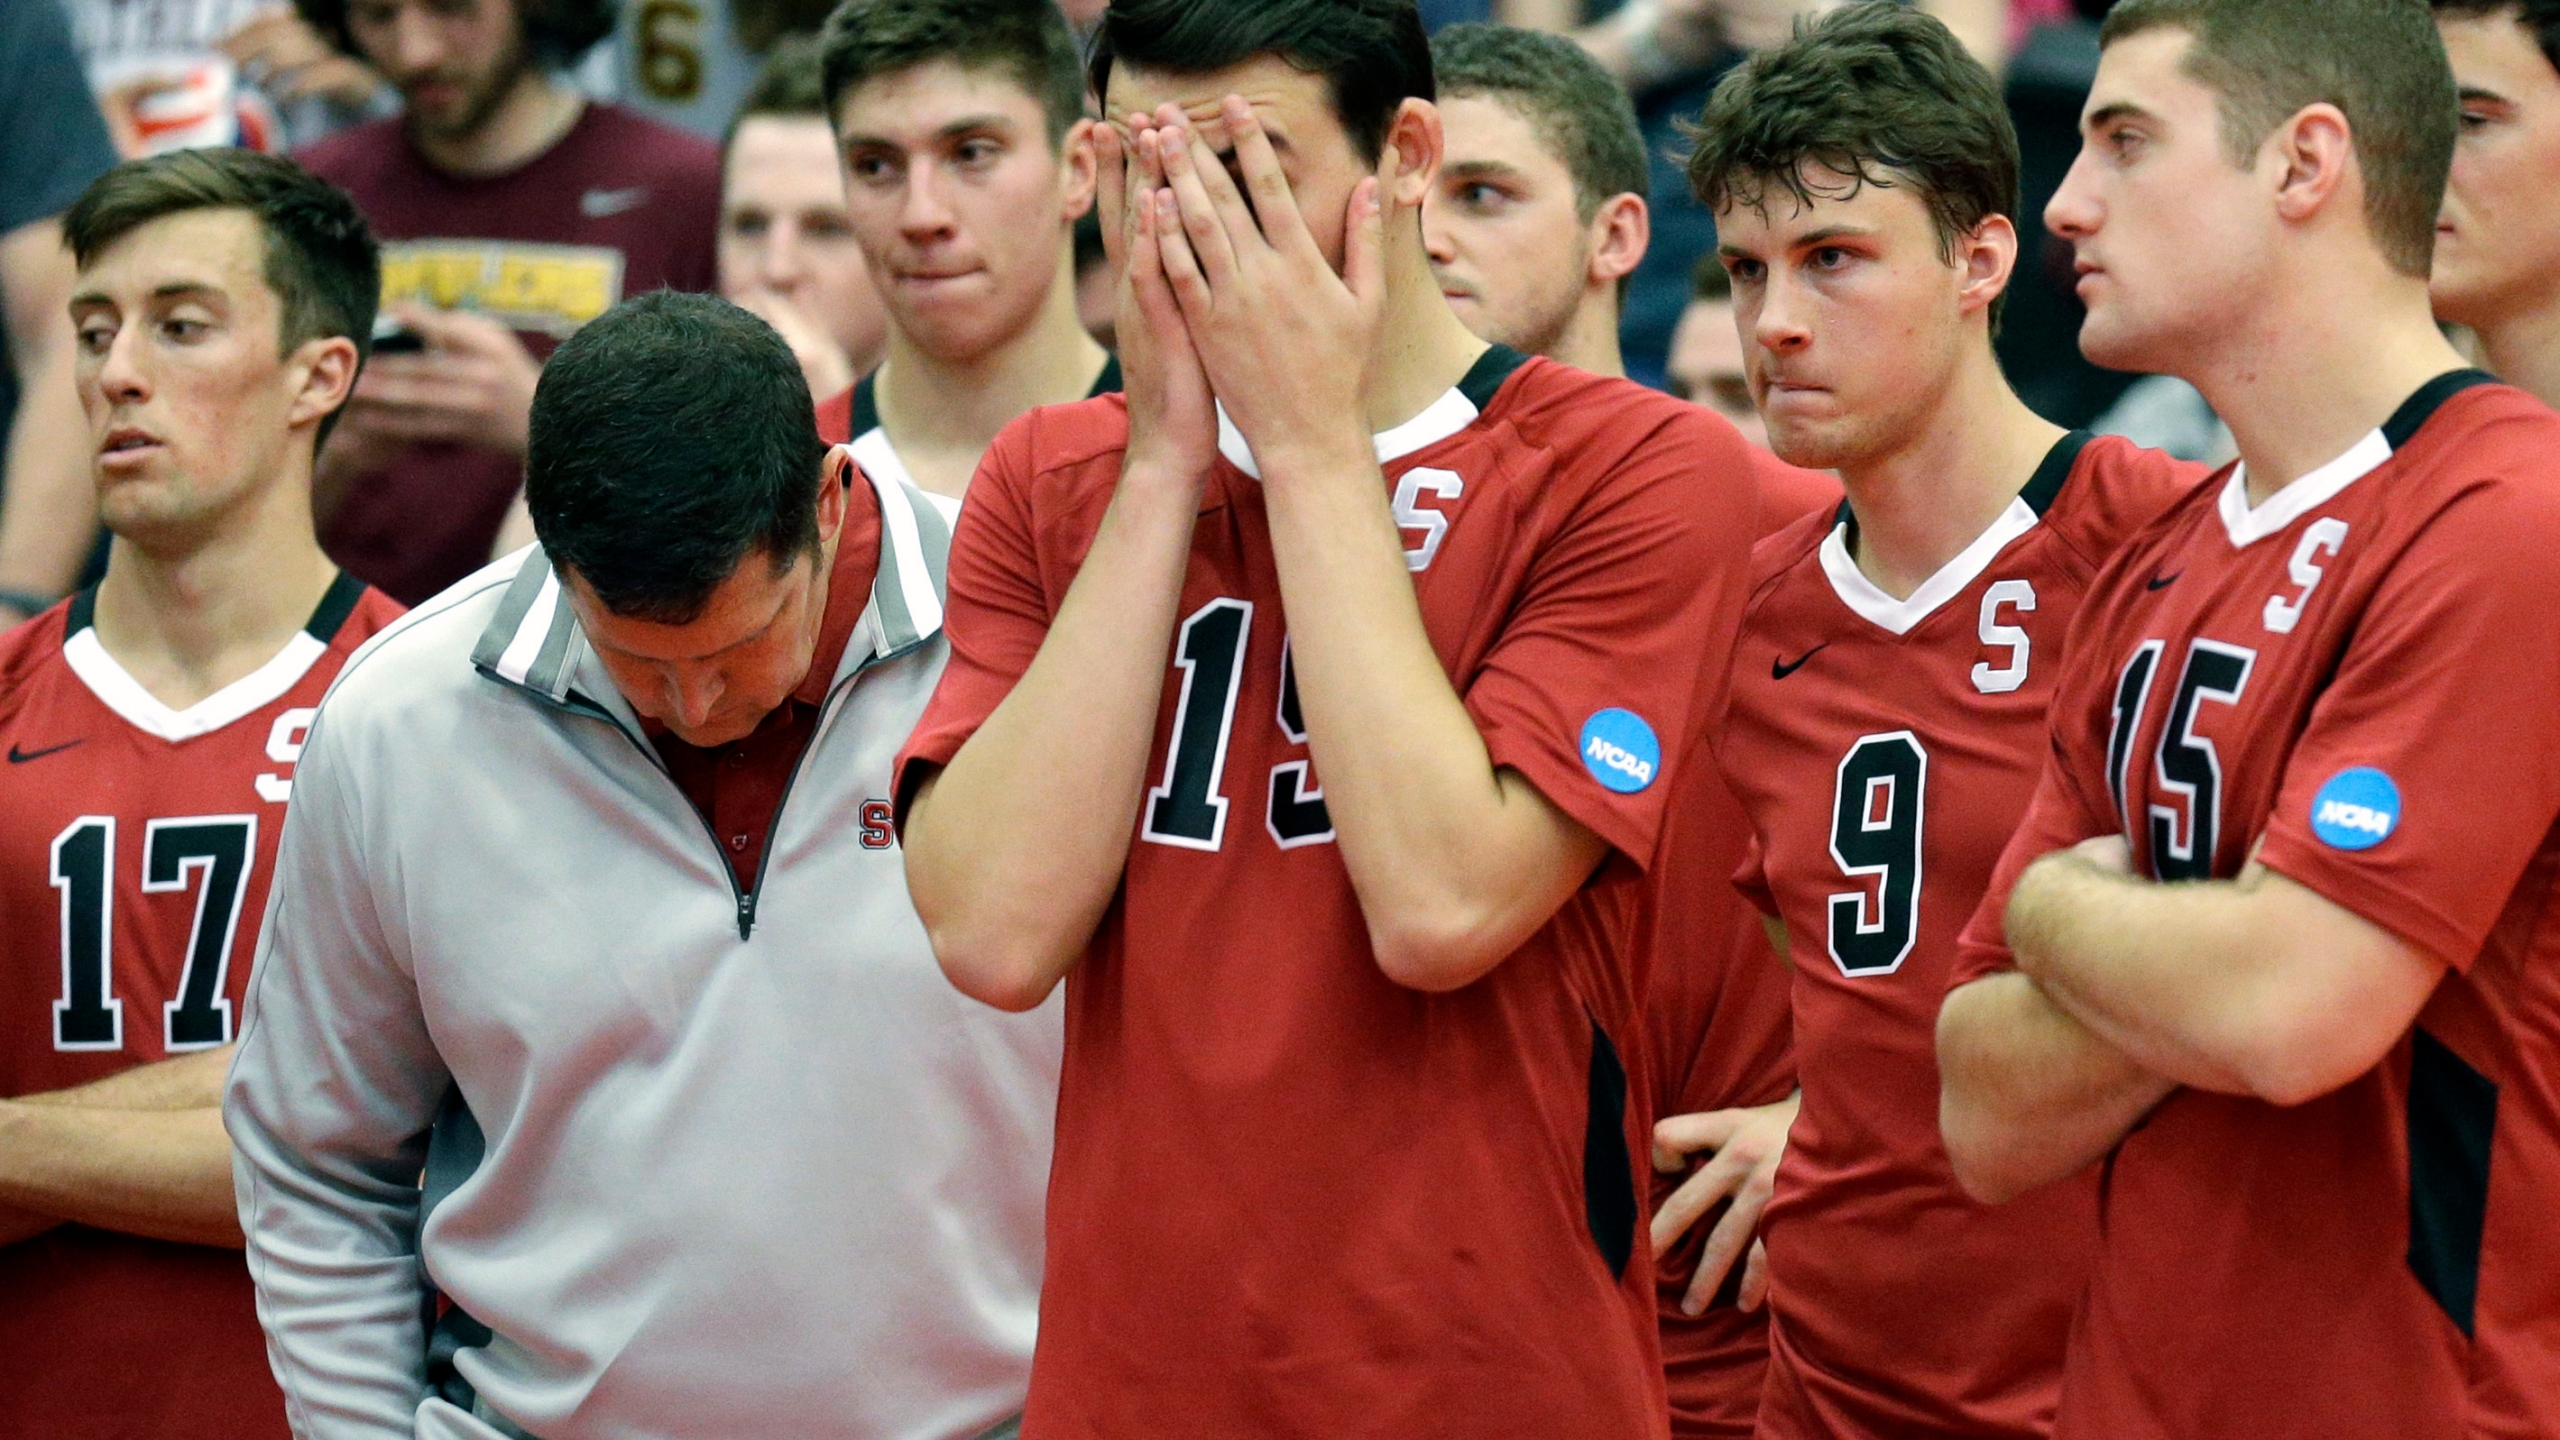 Stanford Men S Volleyball Signee And Recent Iolani Grad Kupono Browne Reacts To Loss Of Program In 2021 Khon2